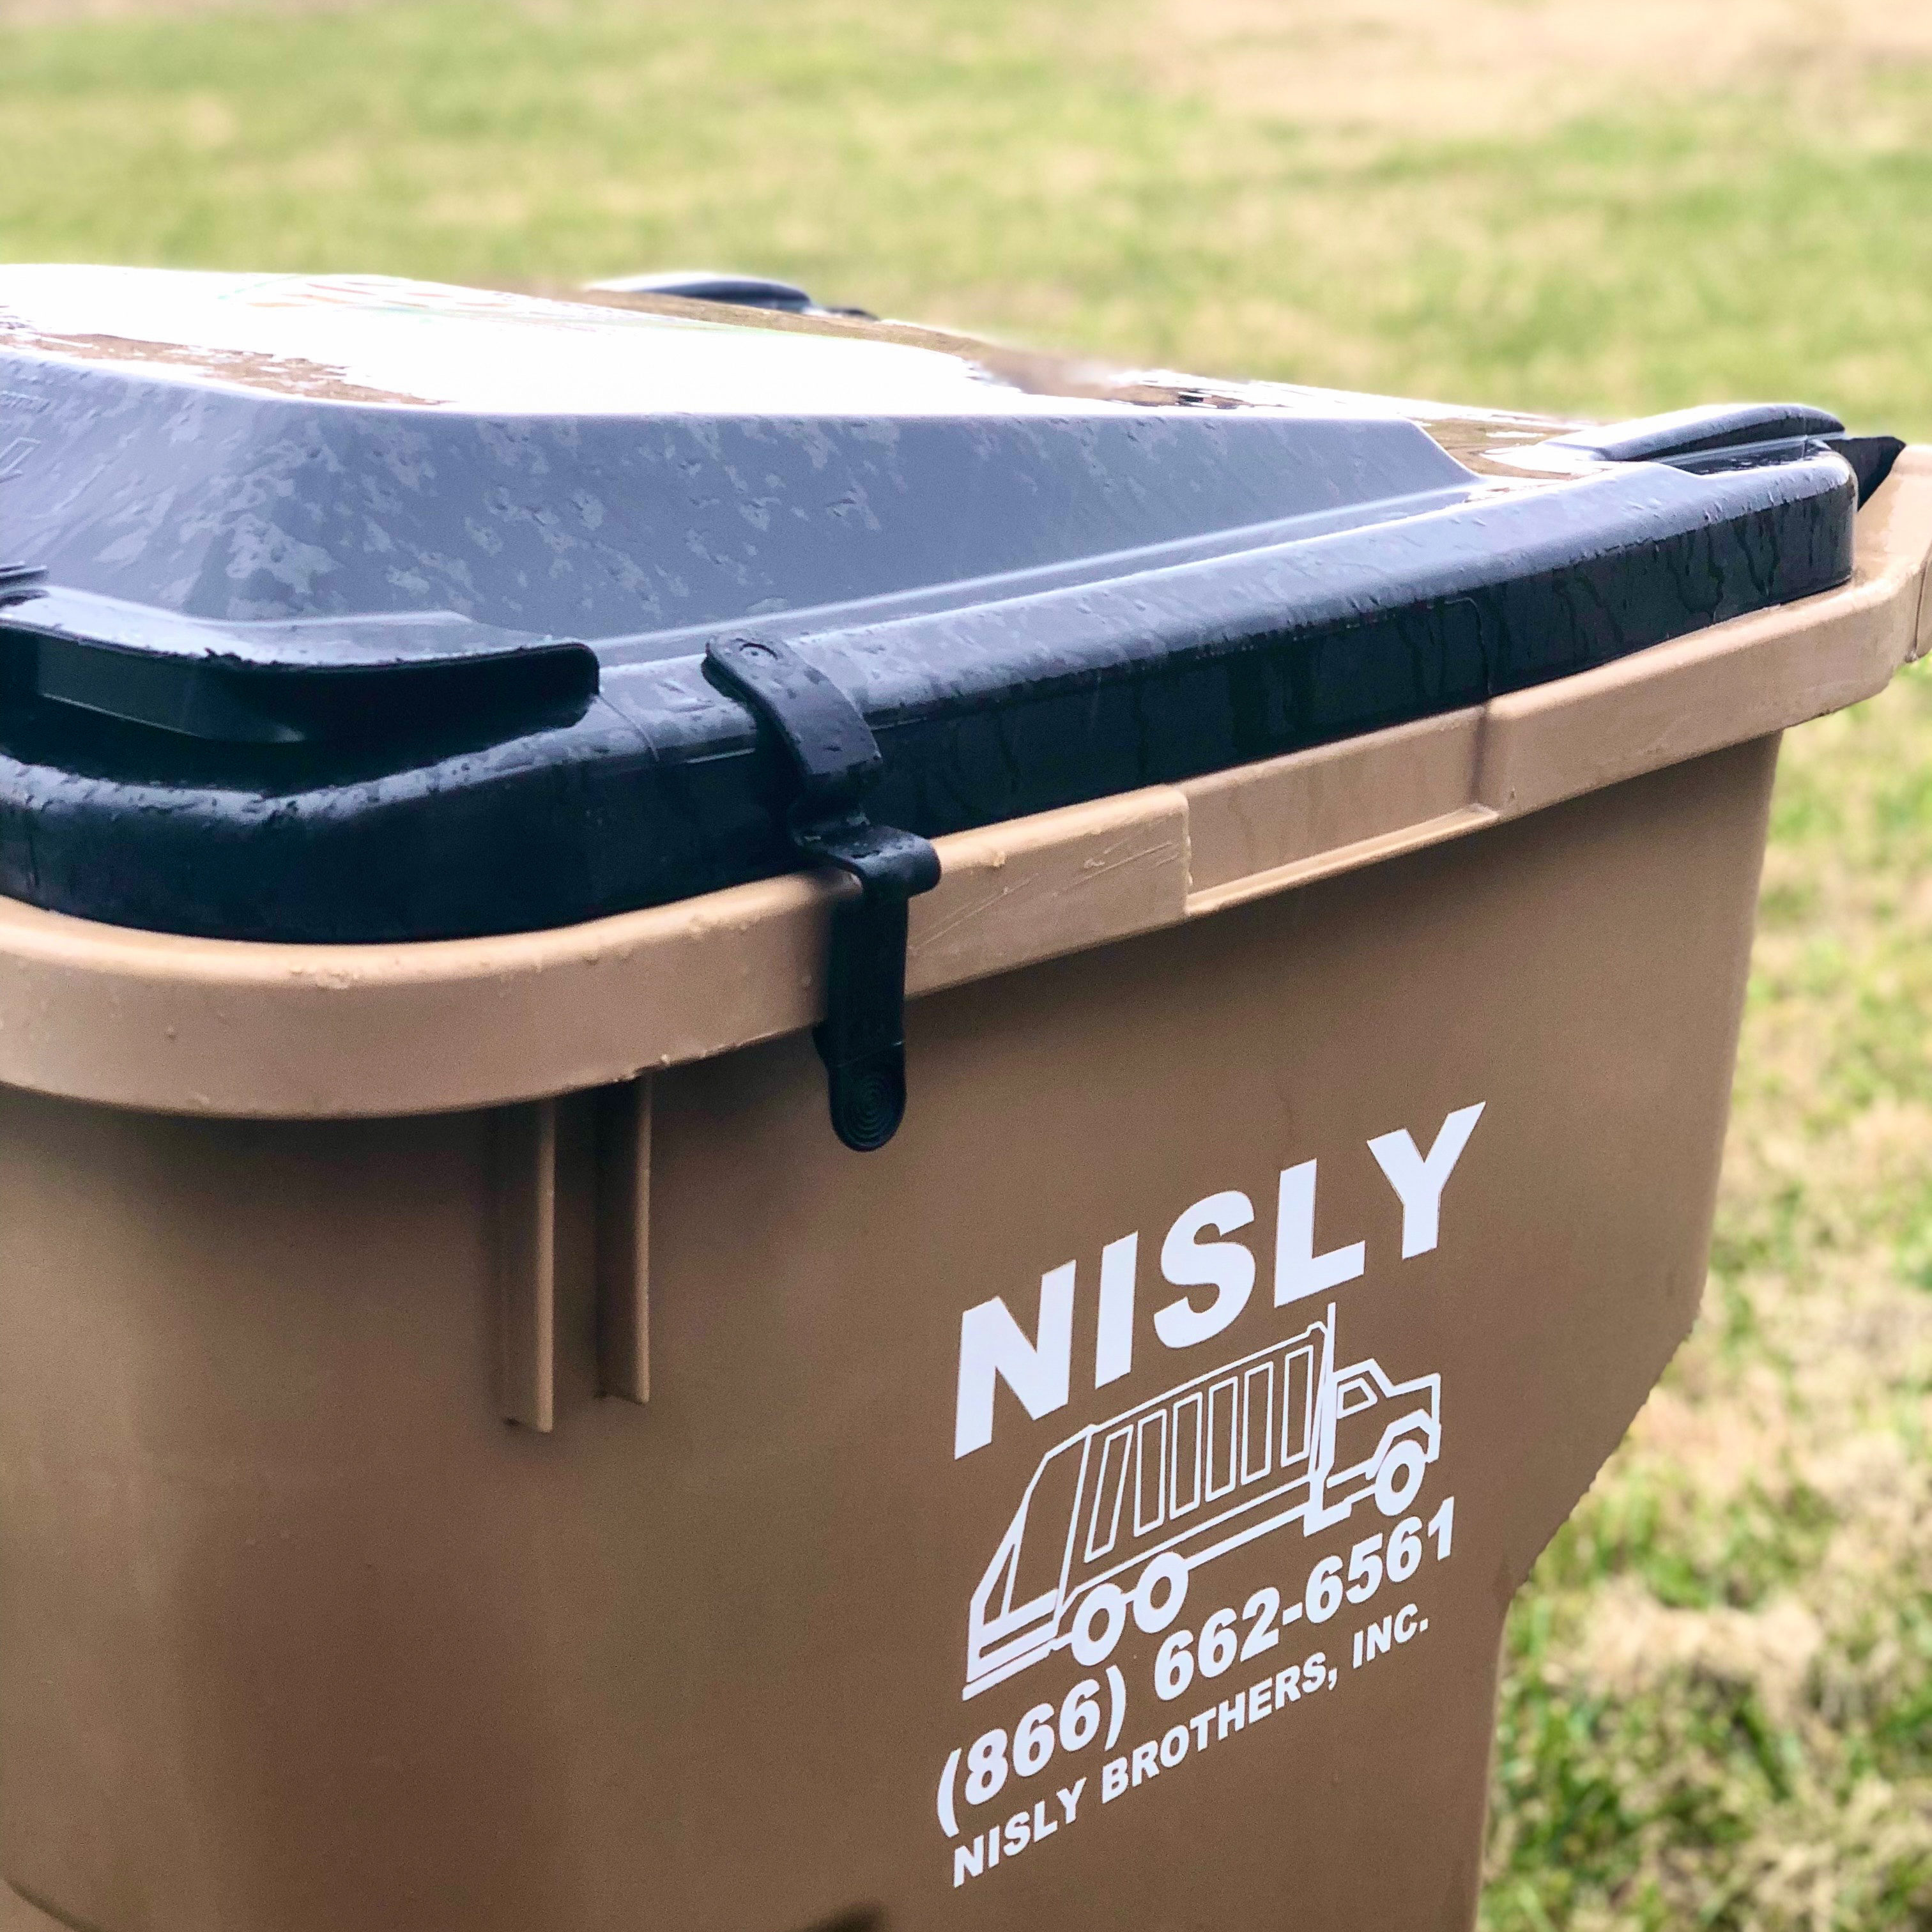 commercial recycling services for businesses throughout central kansas equipped nisly wind latches